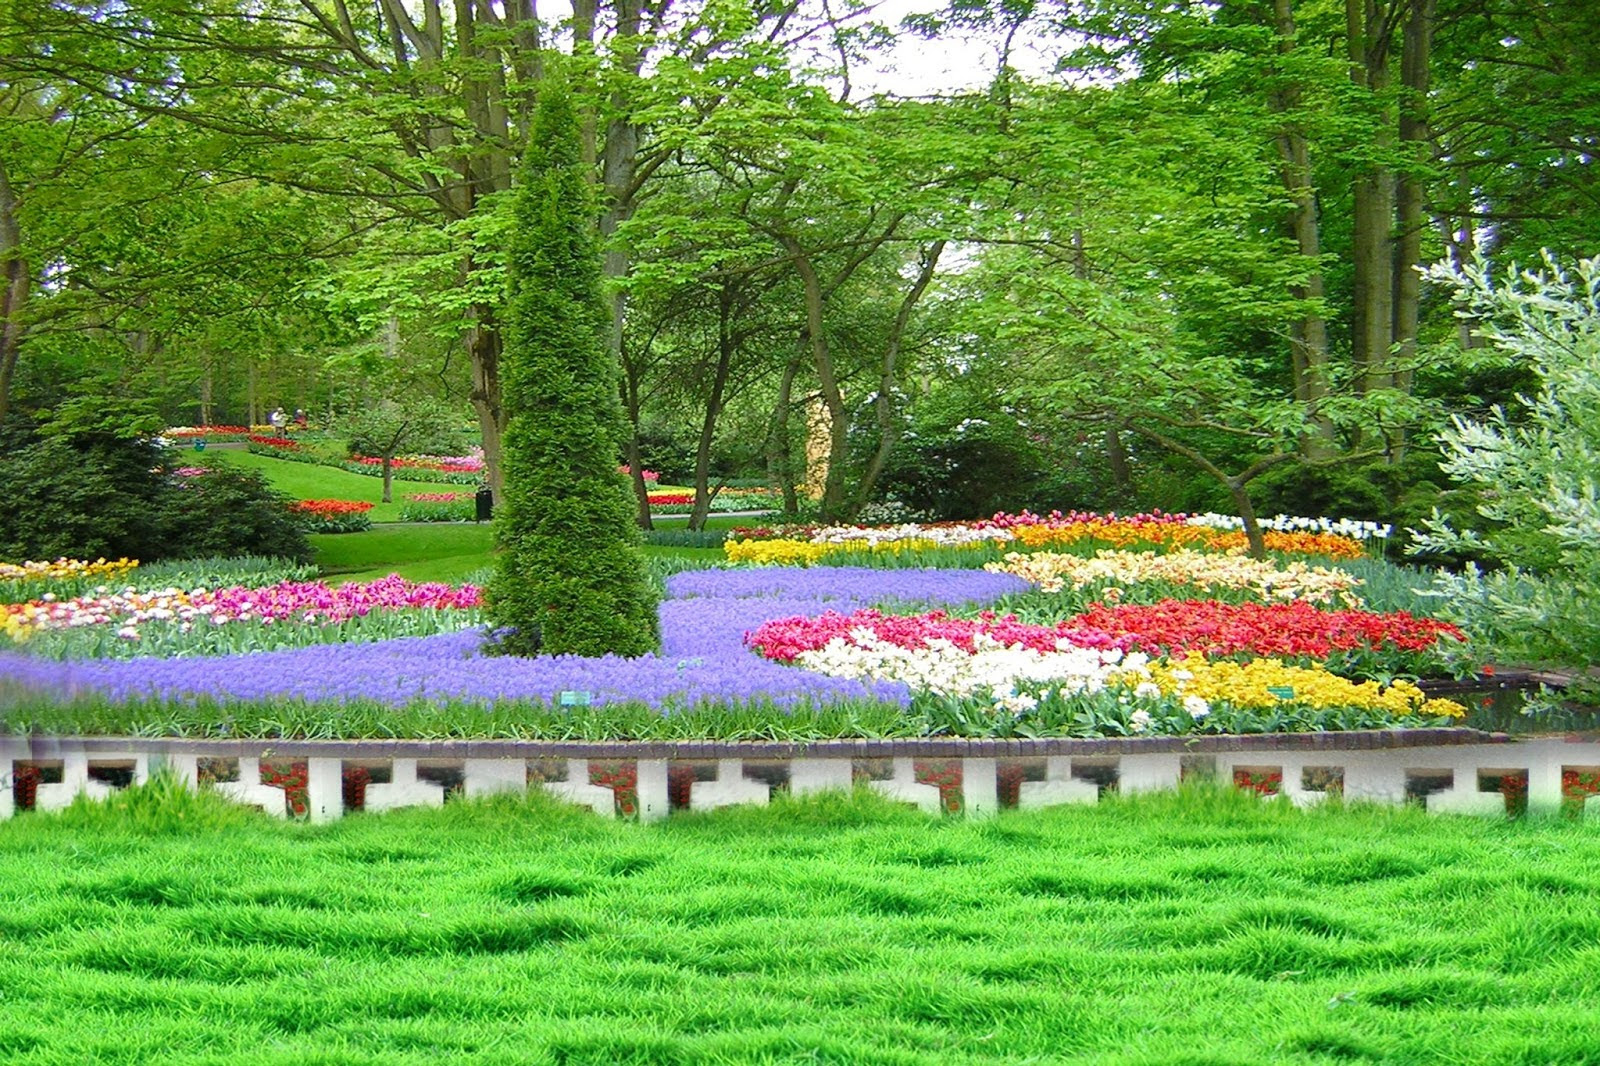 Photoshoot Garden Background Hd Images For Photoshop